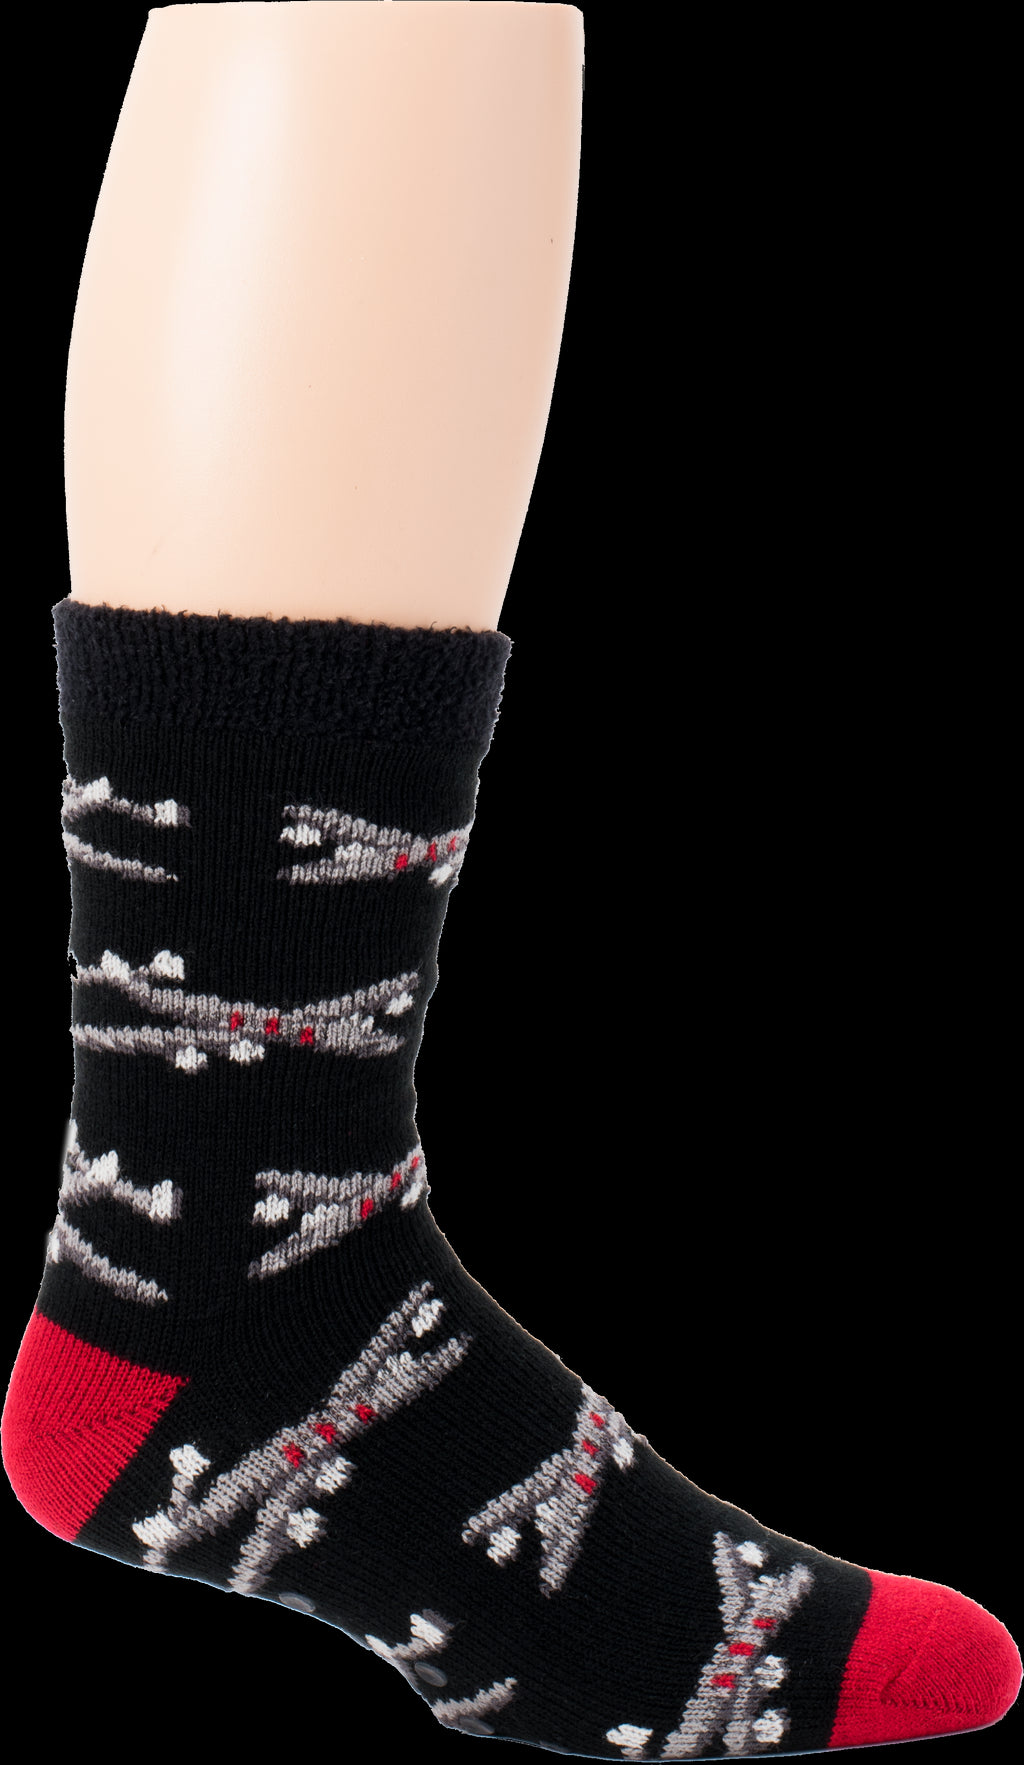 This sock is so cozy and warm with double thickness of fuzzy polyester on the inside. The outside is Black with Grey, White, Black and Red Airplanes all around the sock. The Heels and Toes are Red.